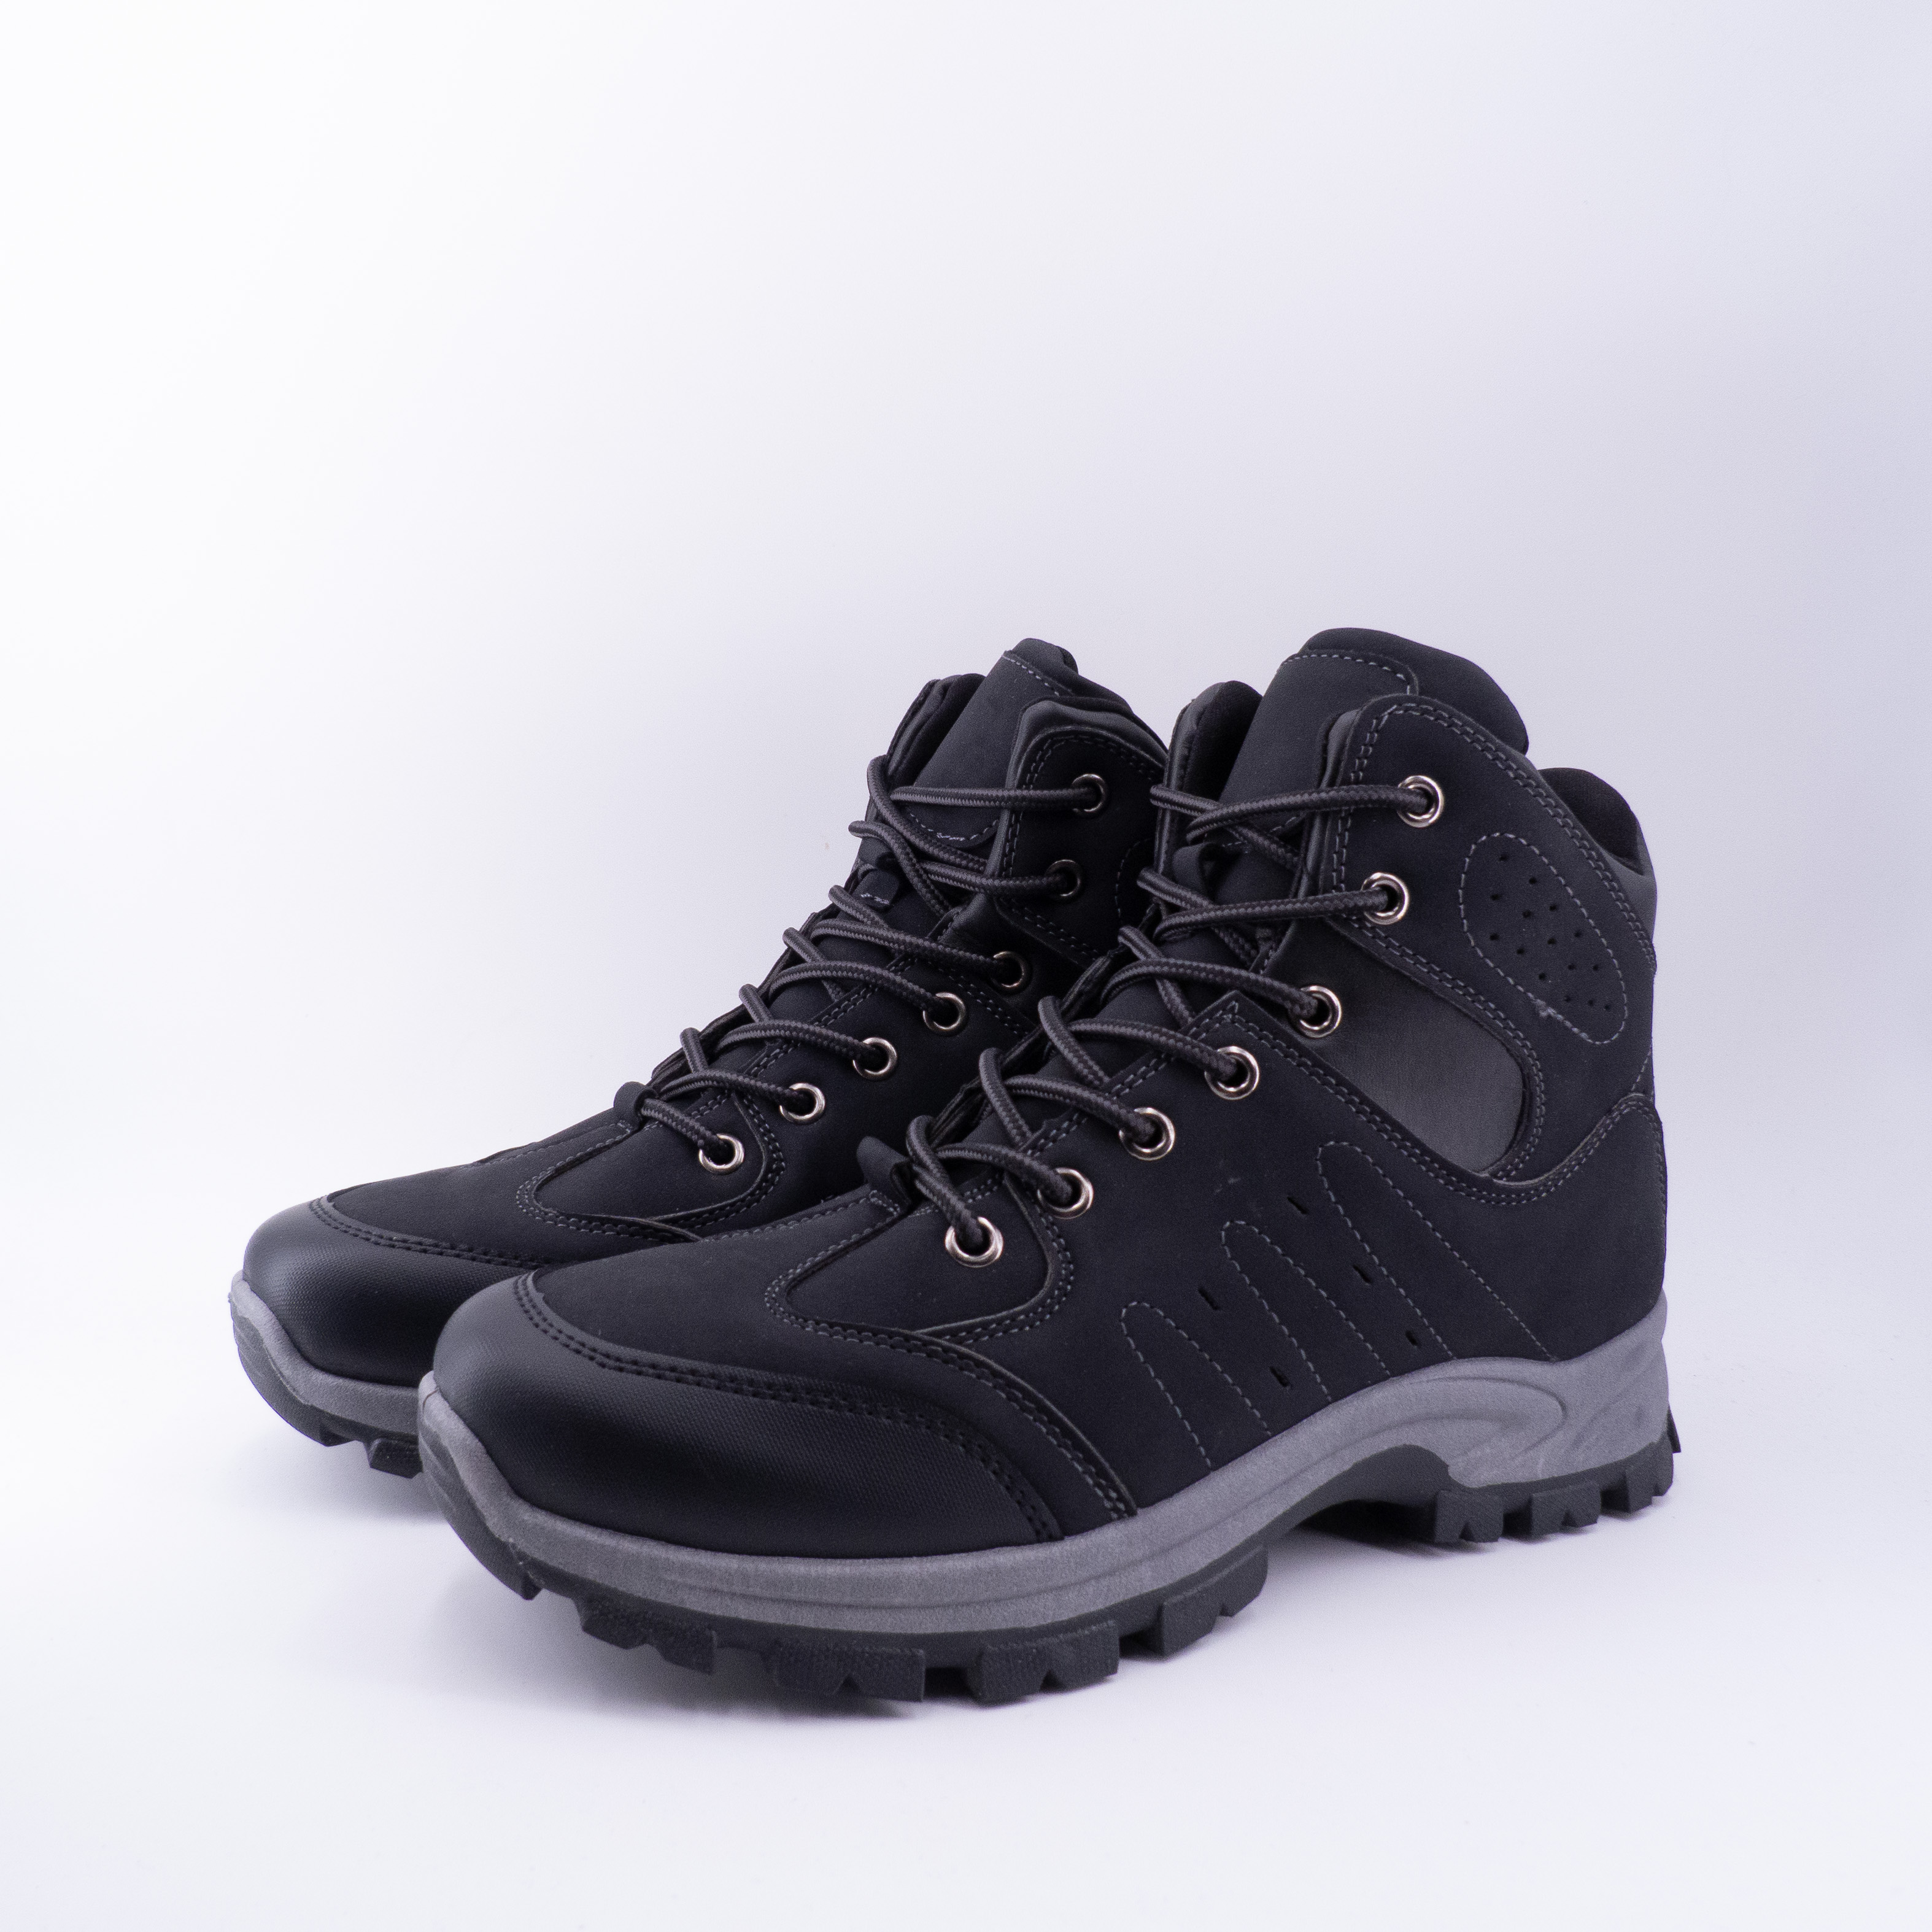 Winter Boots For Men Ankle Boots With Cords MOUNTAIN Sports Booties ANKLE BOOTS Man Casual Shoes Fashion